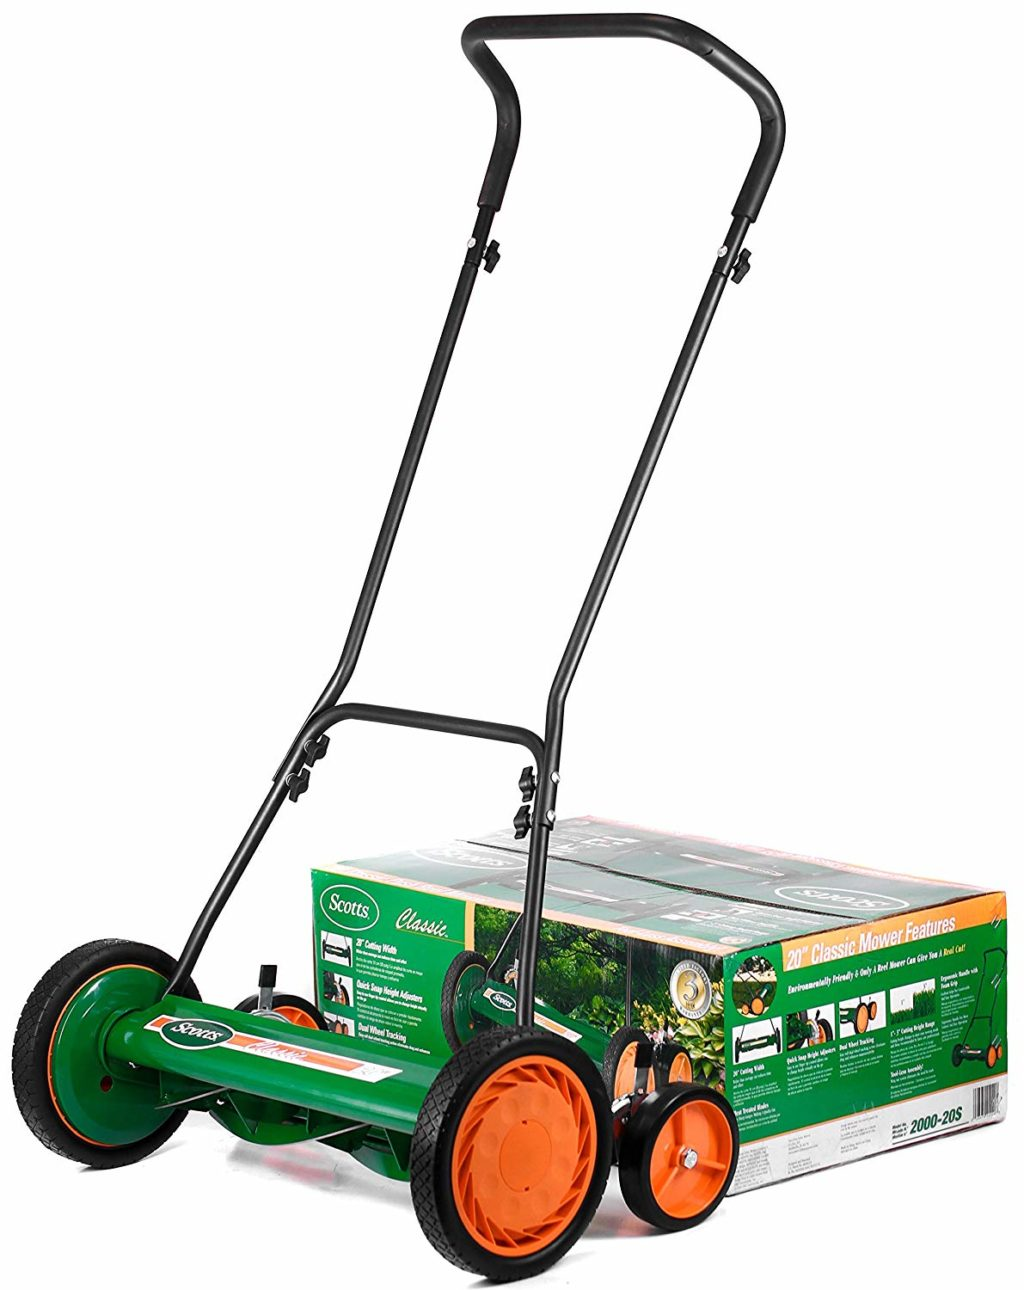 Scotts 2000 20 20 Inch Classic Push Reel Lawn Mower